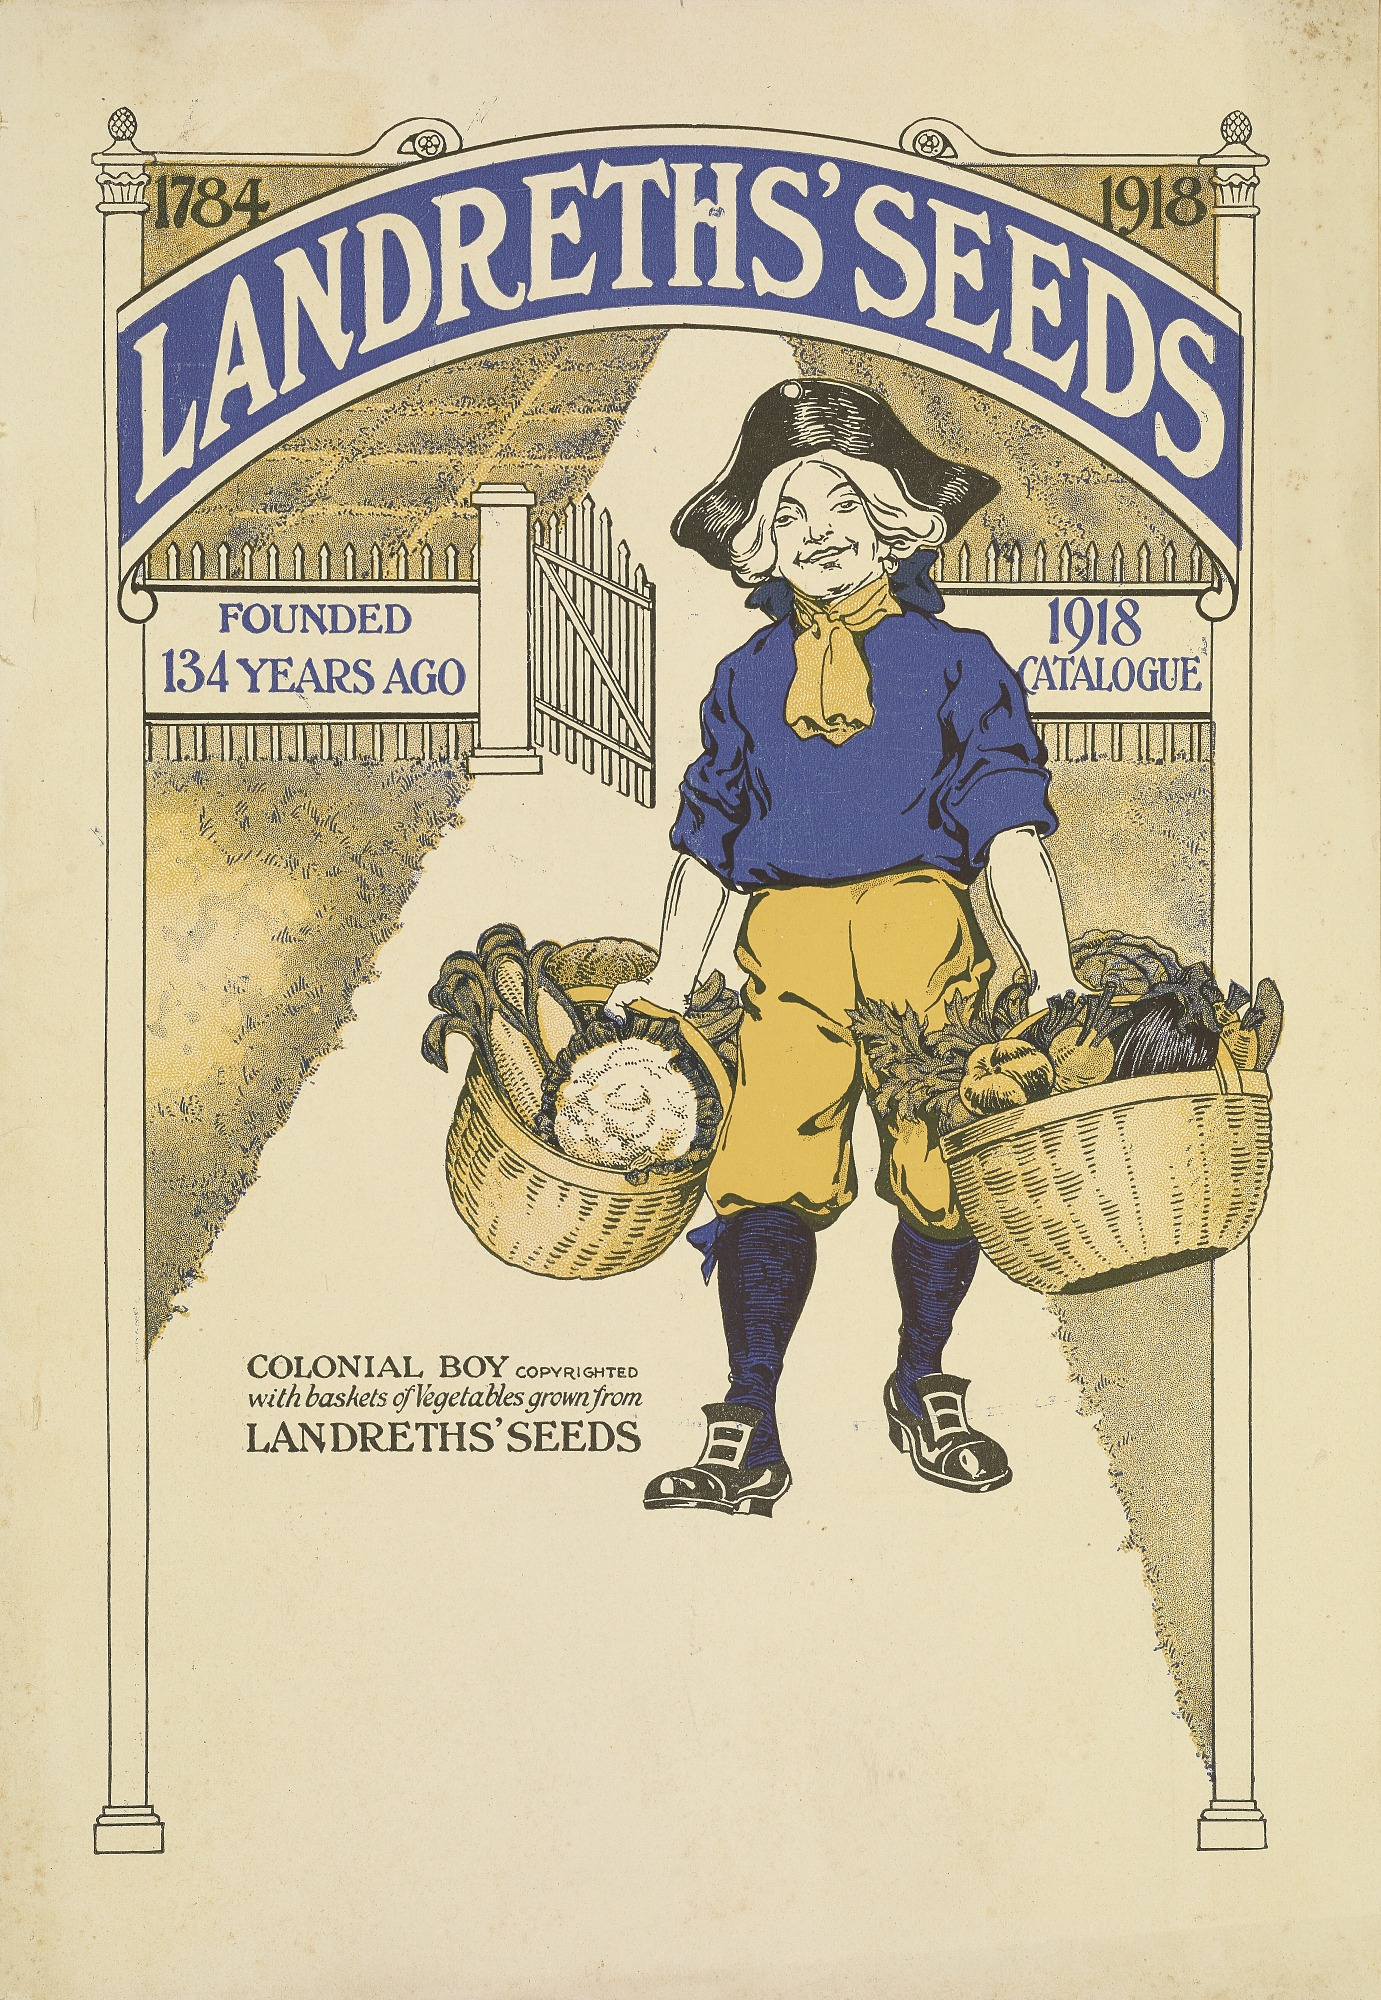 Colonial boy on cover of Landreths' Seeds catalogue, 1918